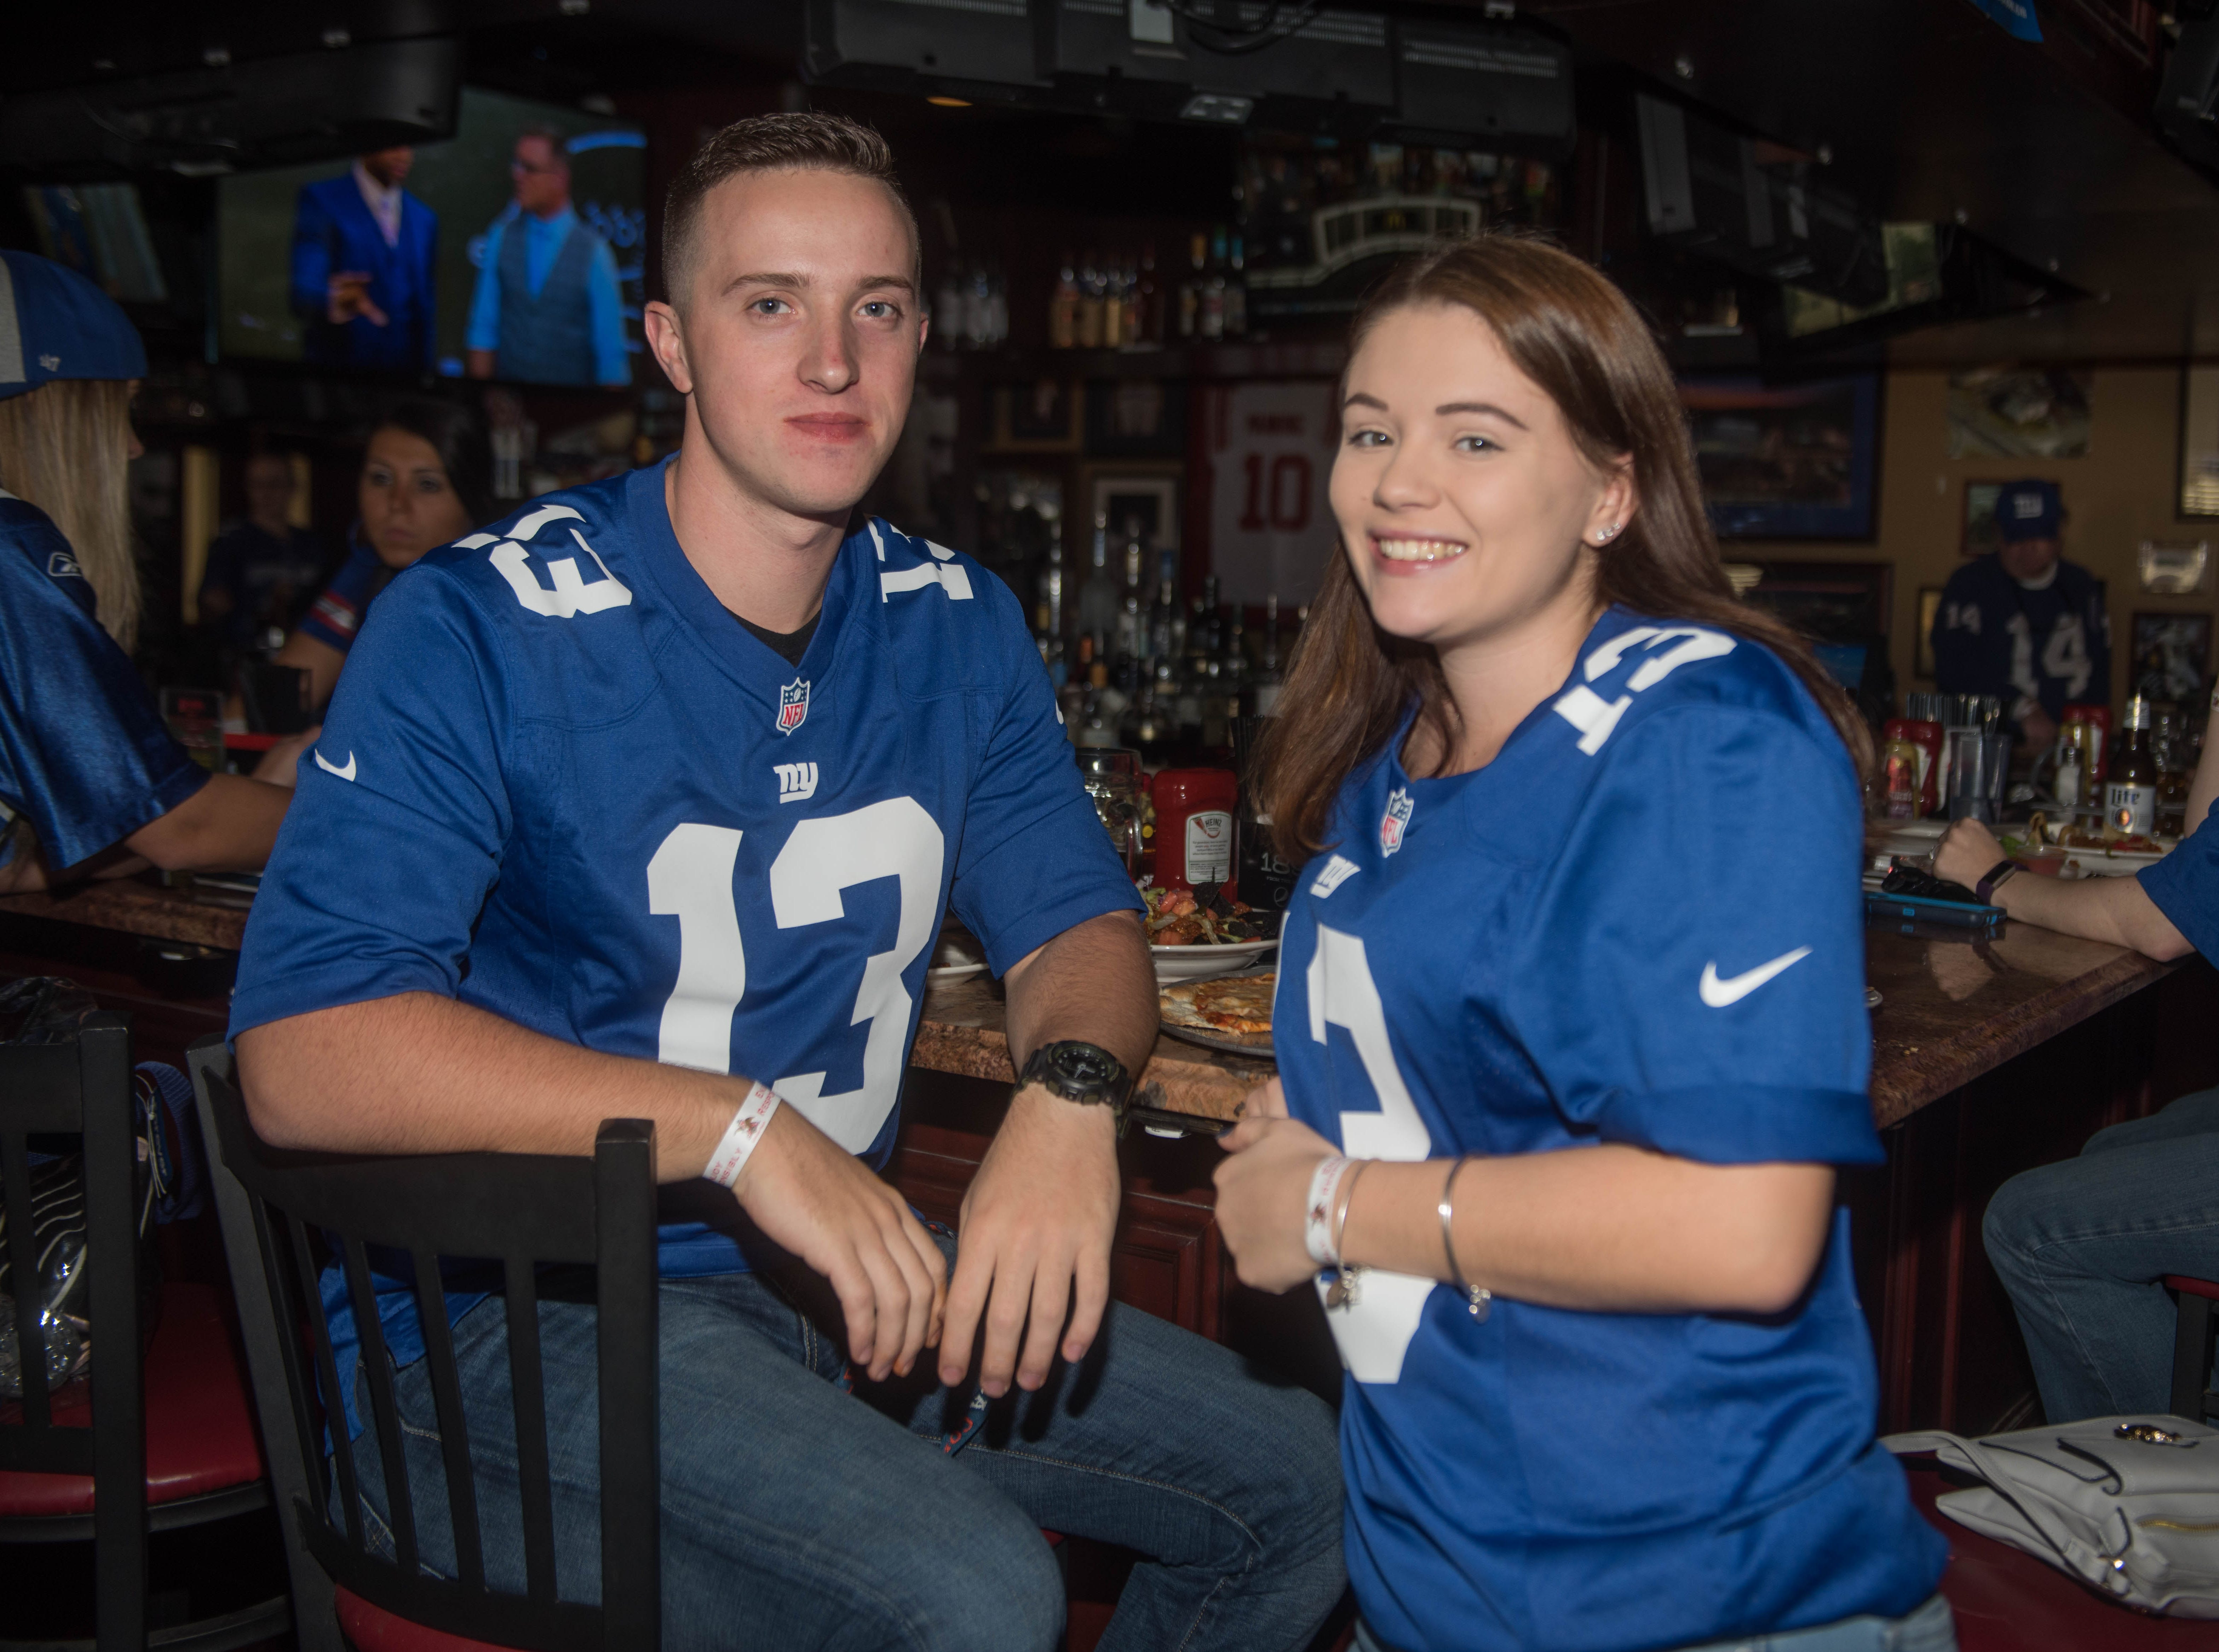 Tim White and Emily McCloskey. The Record sports writers Art Stapleton and Dave Rivera joined fans at Redd's to talk Giants and Saints before the game. 09/30/2018